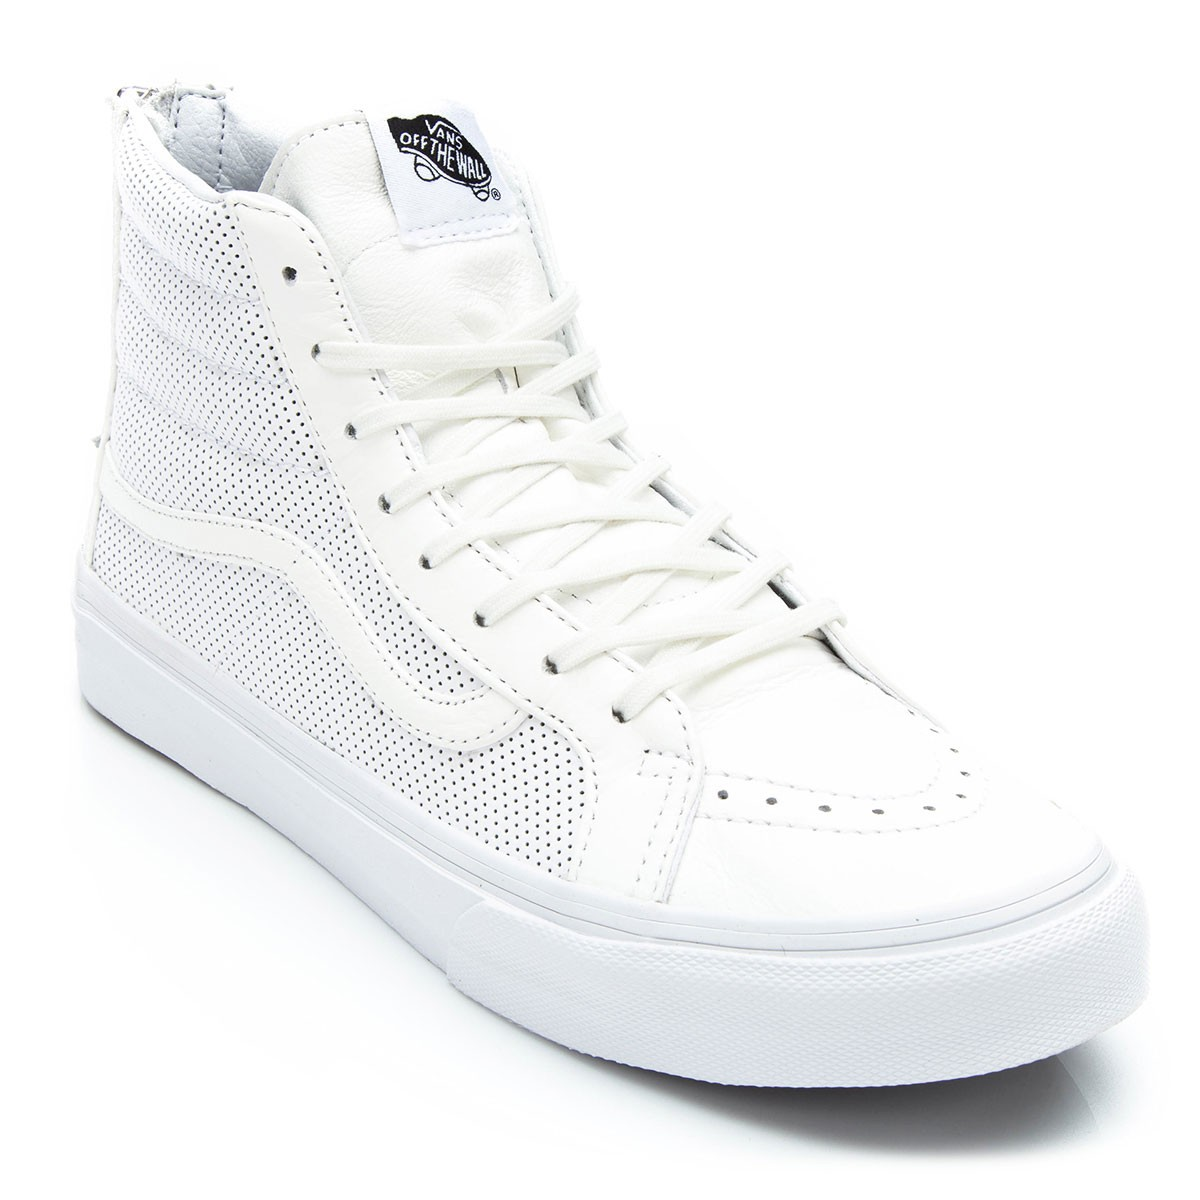 025a58e379 Vans SK8-HI Slim Zip Perforated Leather Shoes - True White - 4.5